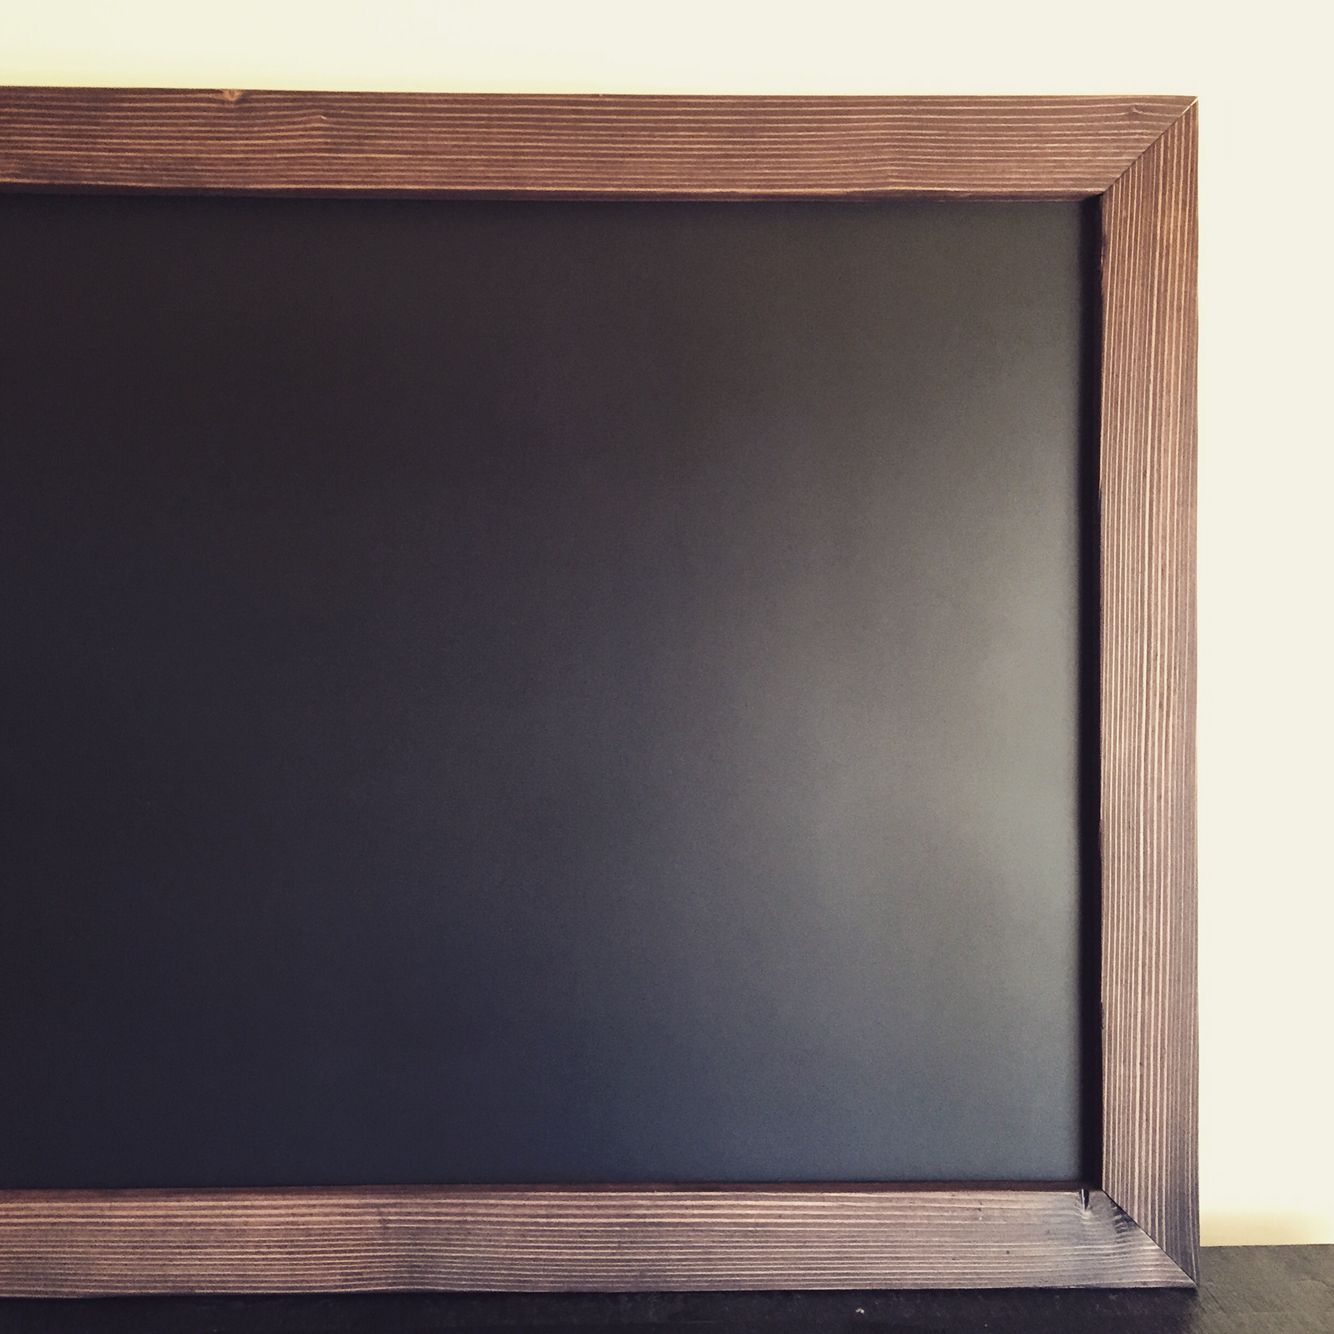 MAGNETIC Framed Chalkboard 48